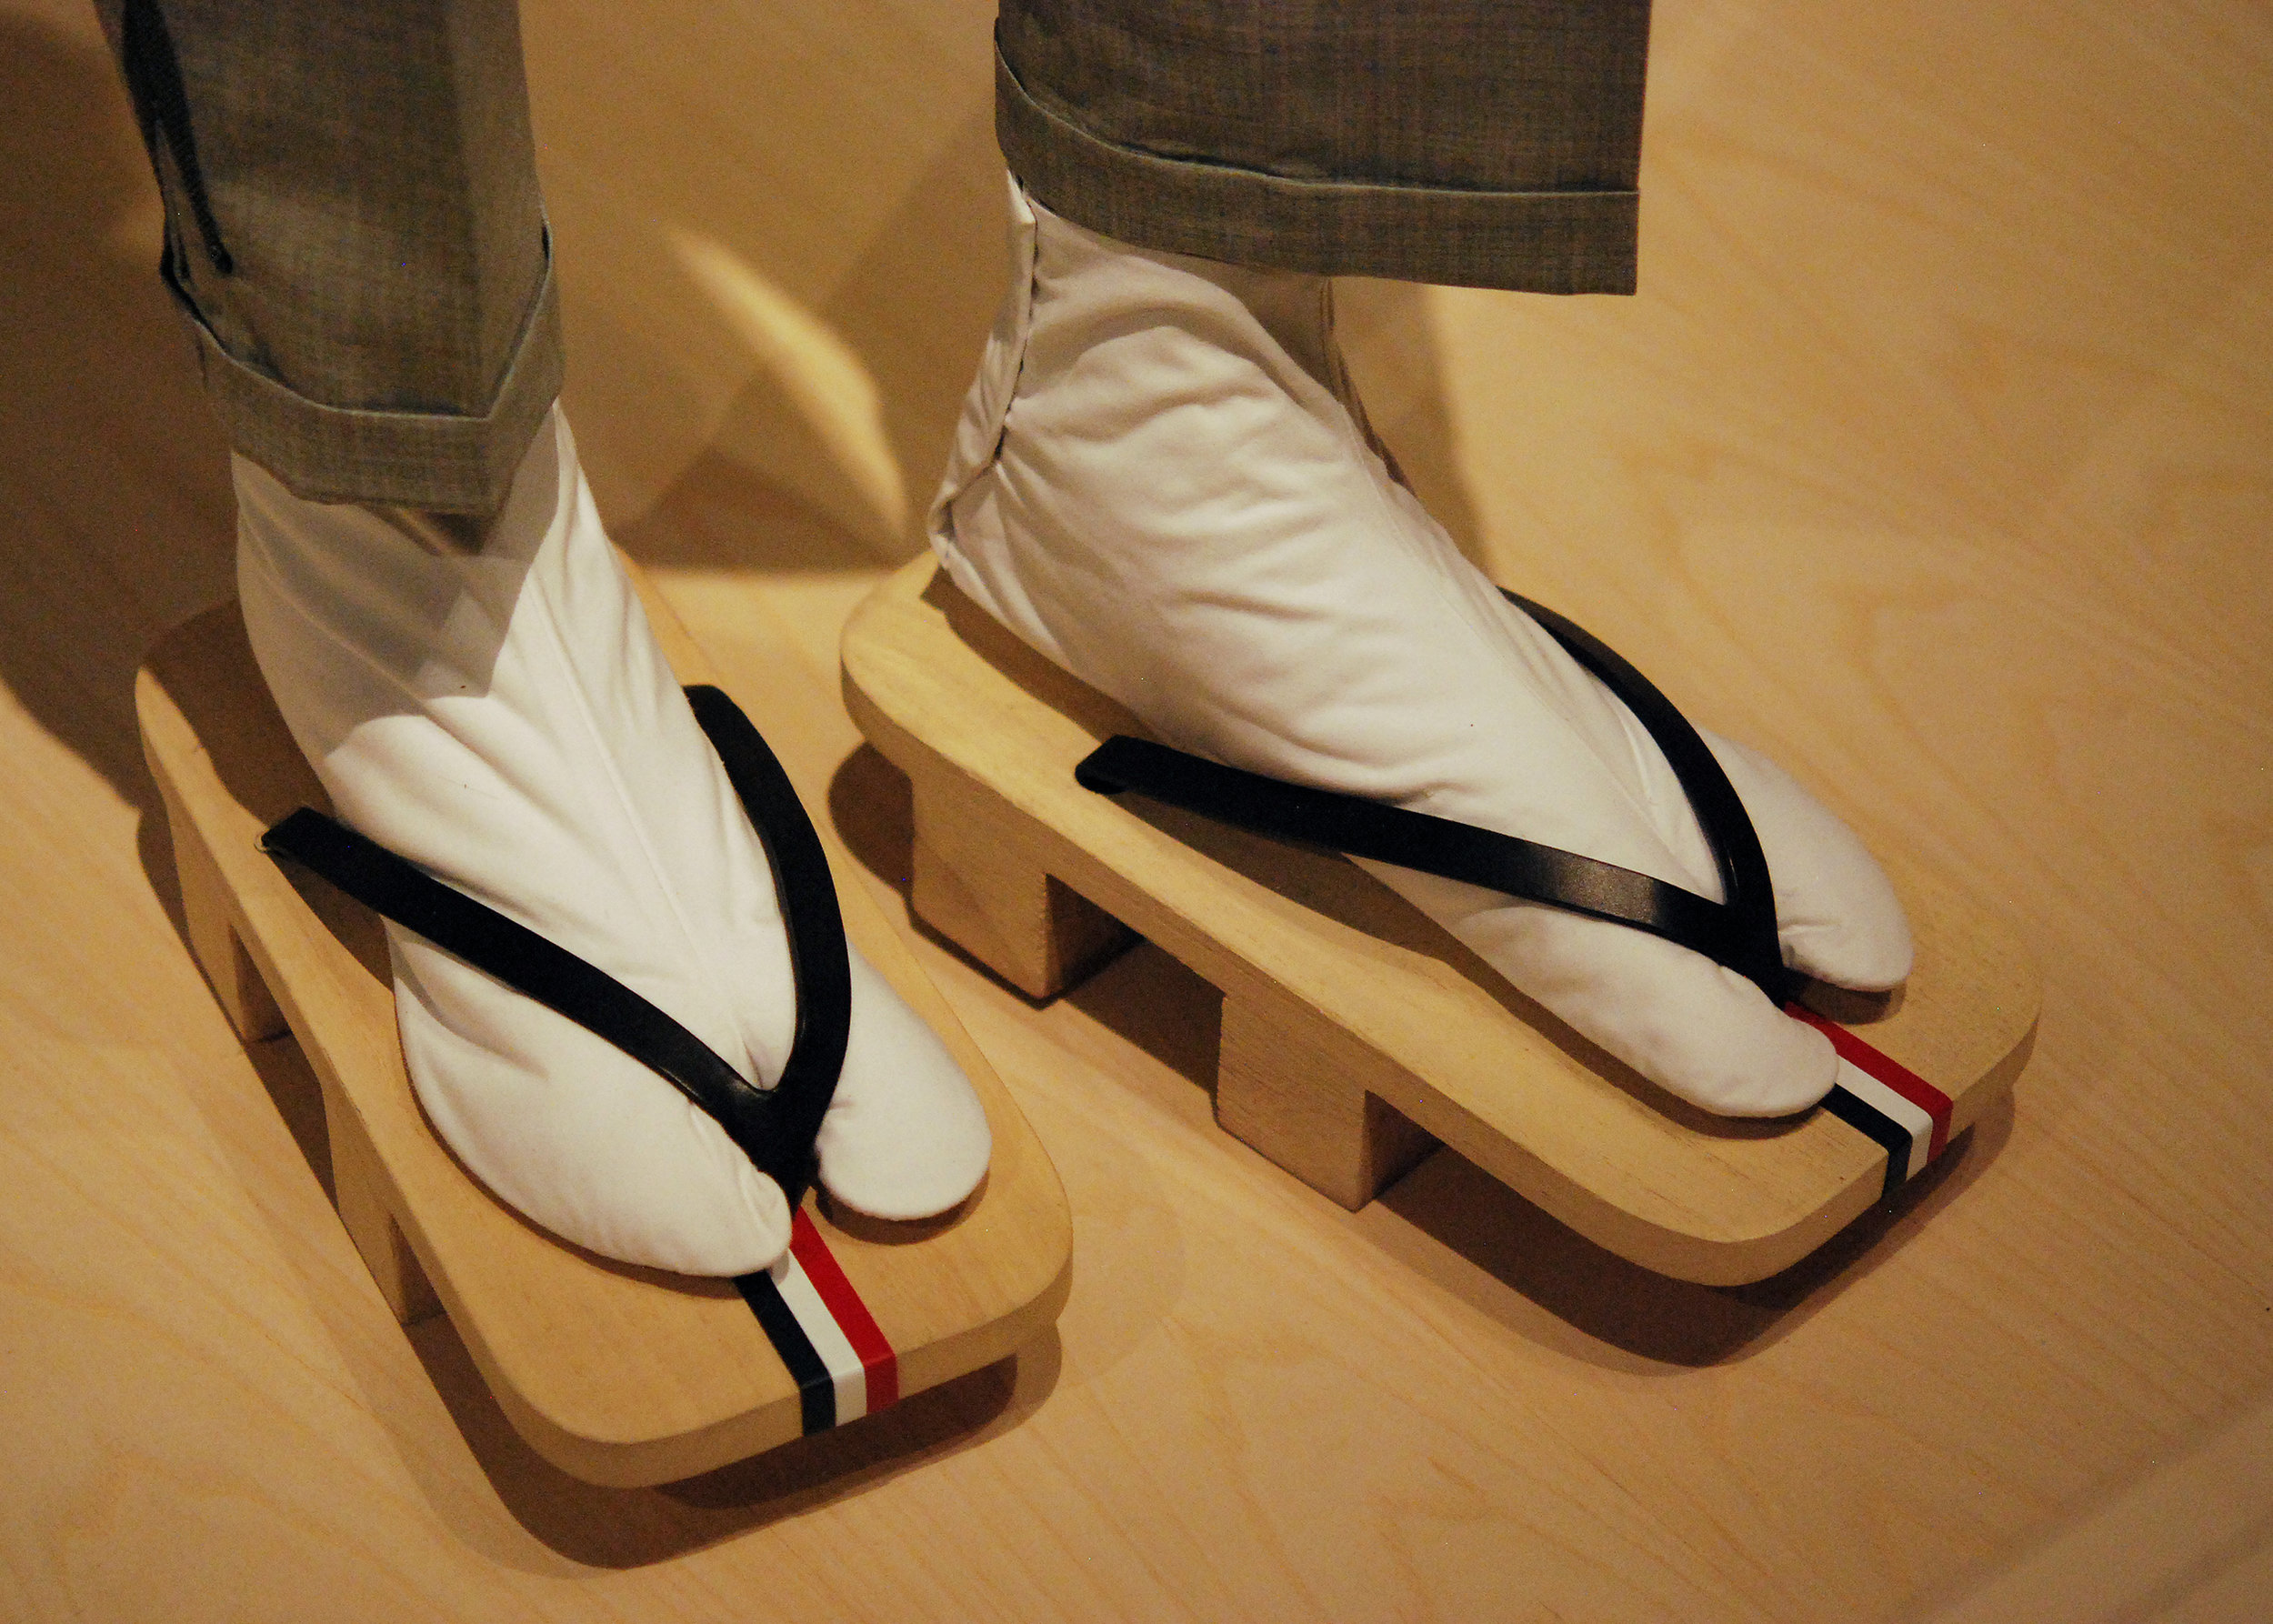 Thom Browne , Sandals, spring/summer 2016. Natural paulownia wood with black, blue, red and white leather